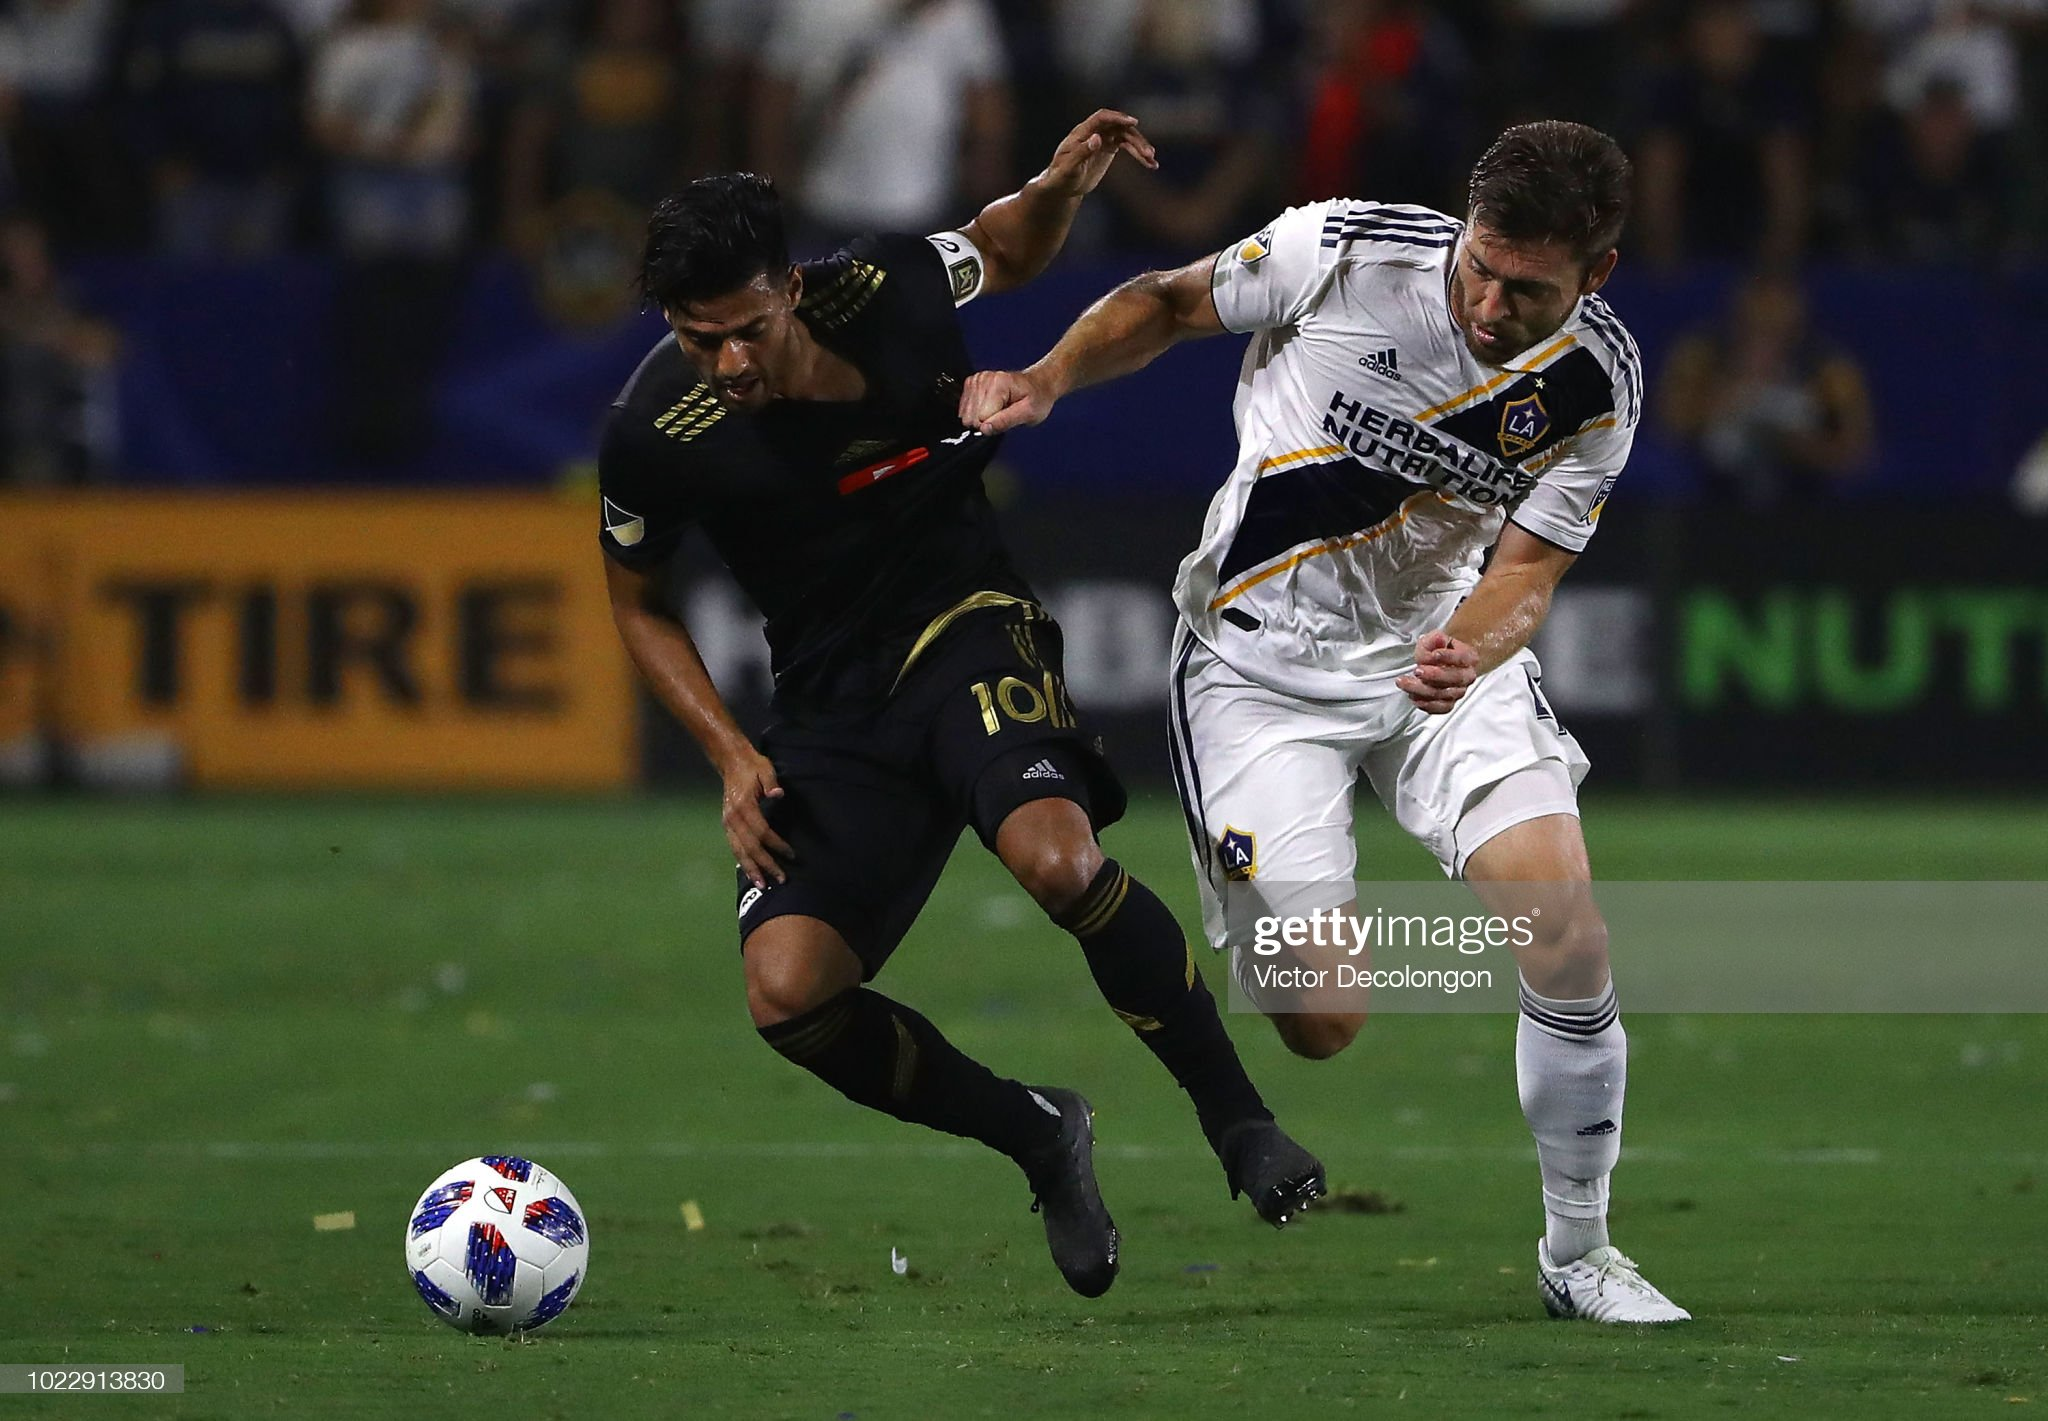 LAFC vs LA Galaxy preview, prediction and odds